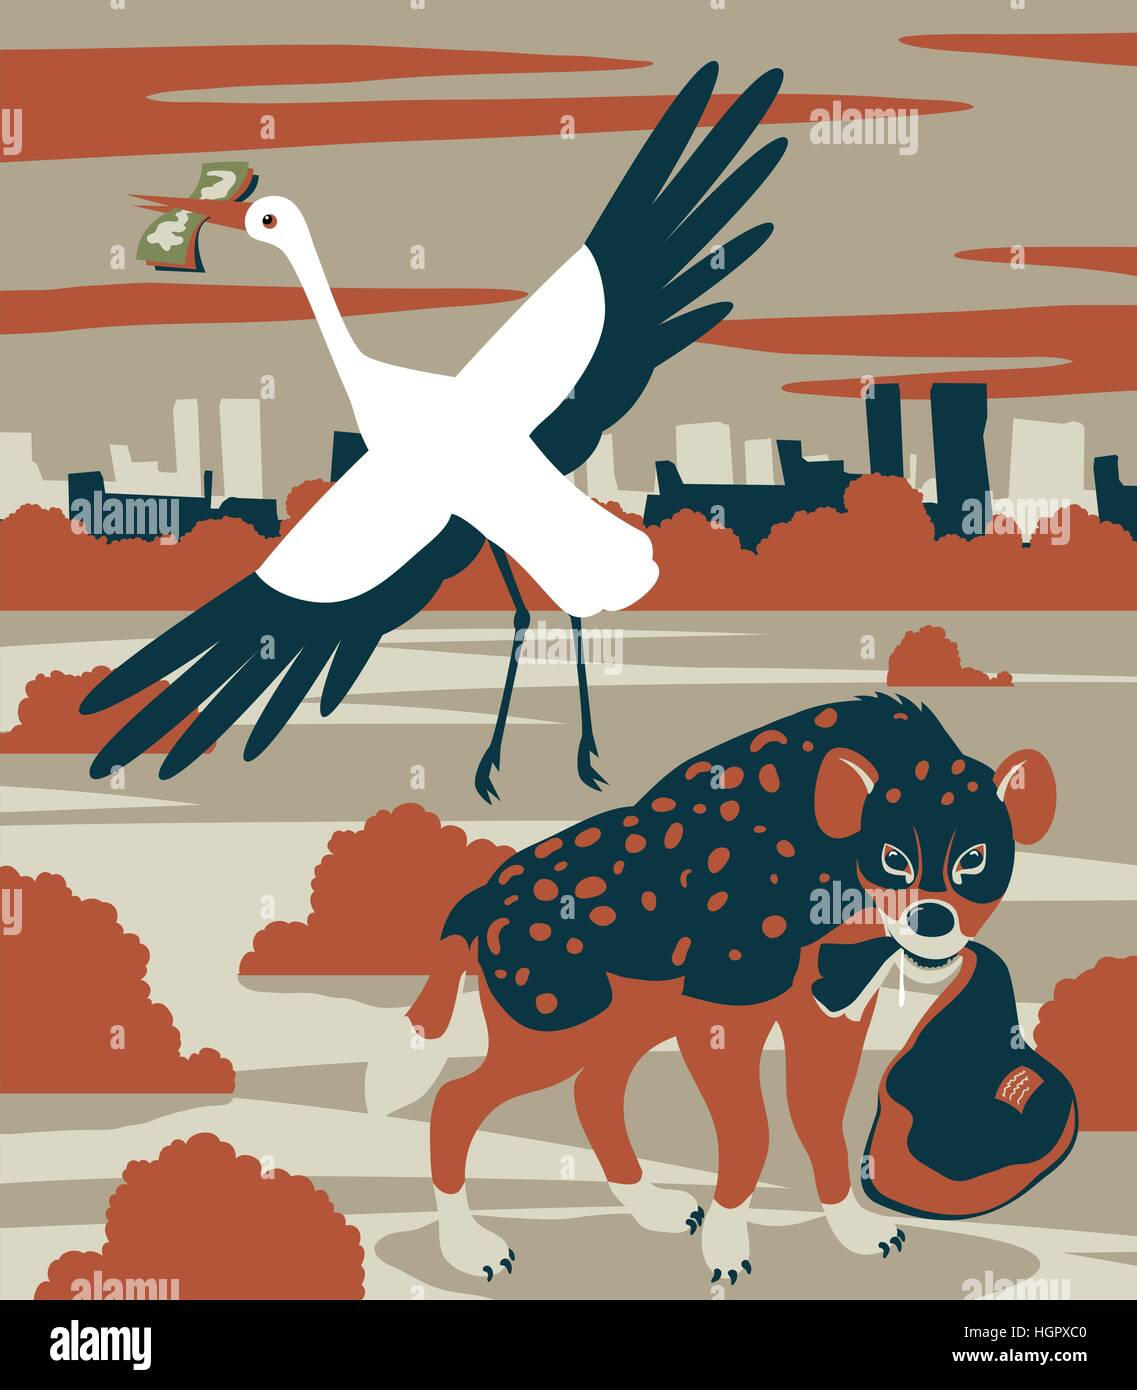 Concept vector illustration of corruption or child mortality as a stork sells a delivery package to a hyena - Stock Image